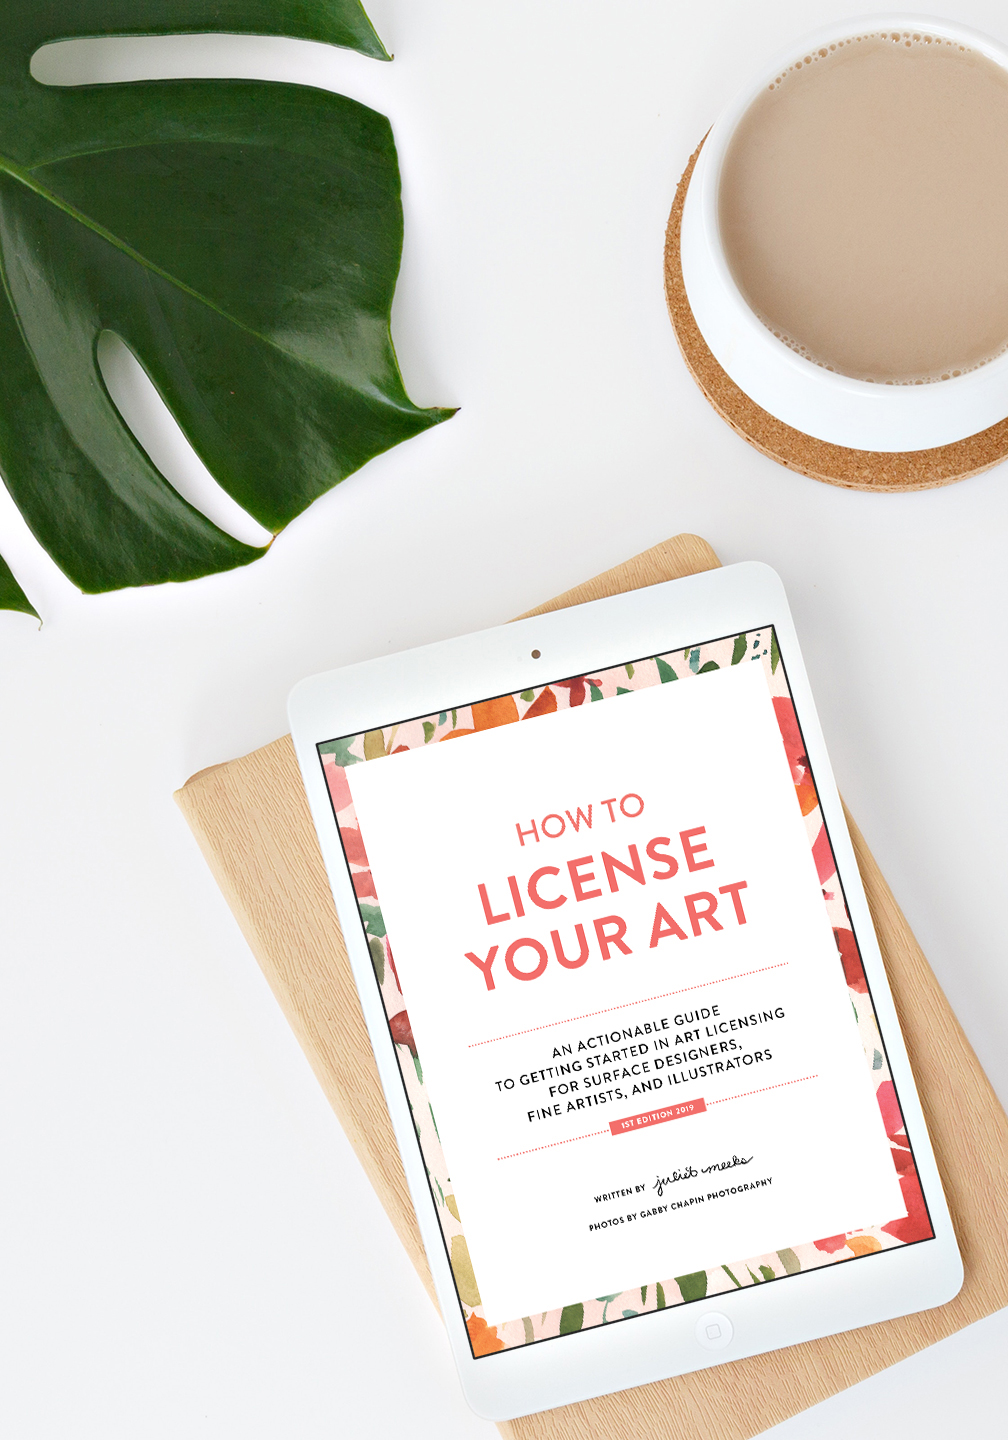 How To License Your Art Guide on iPad